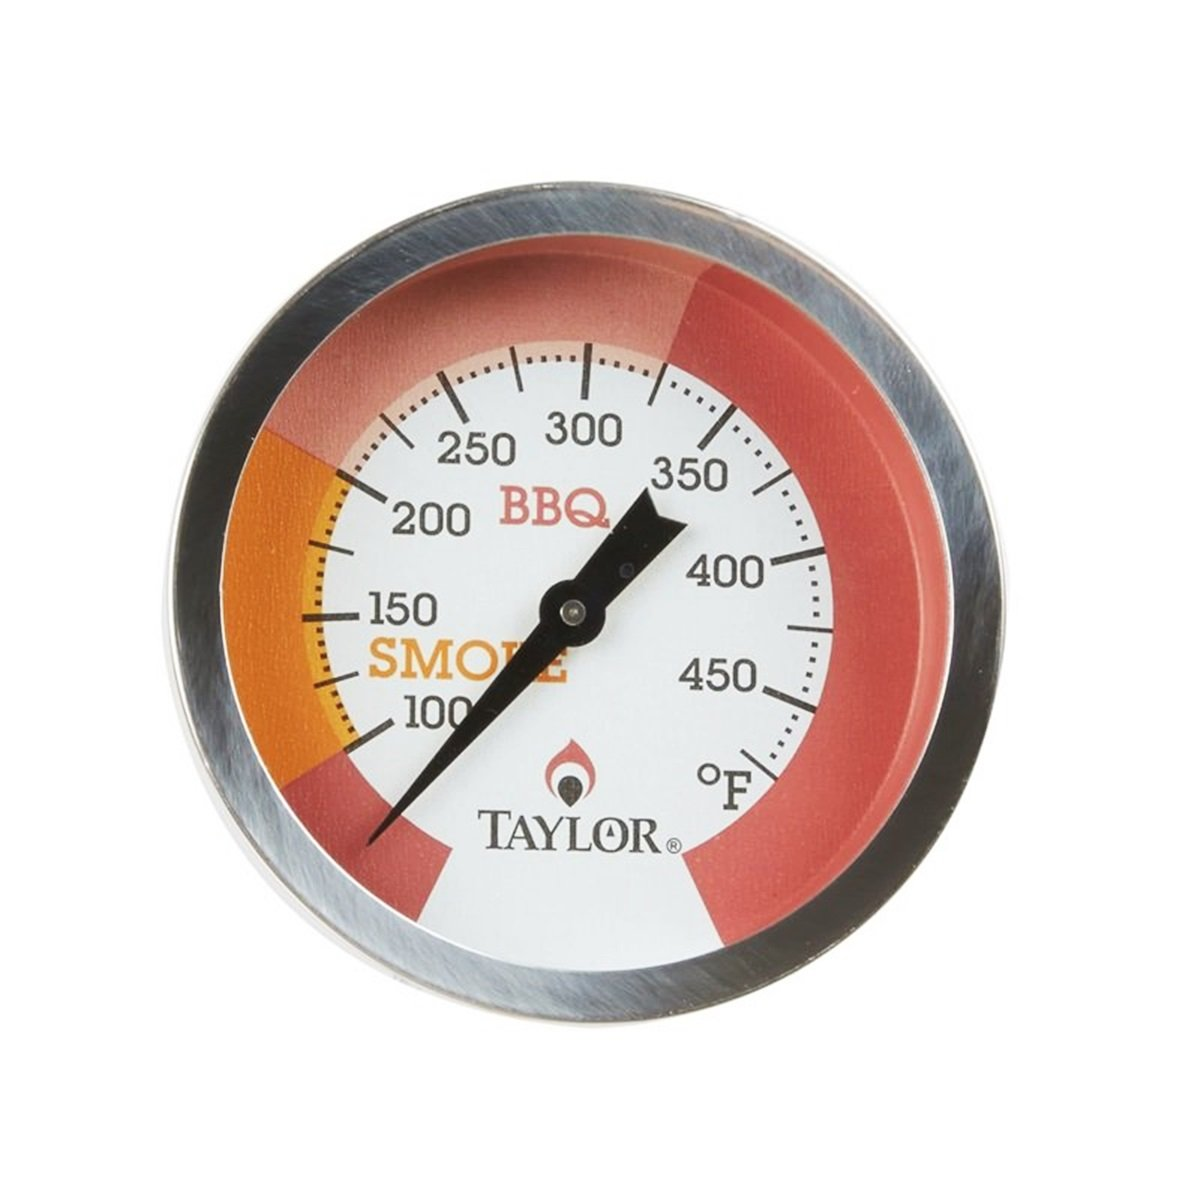 Taylor 814GW Barbecue Pit Thermometer Glow Dial main